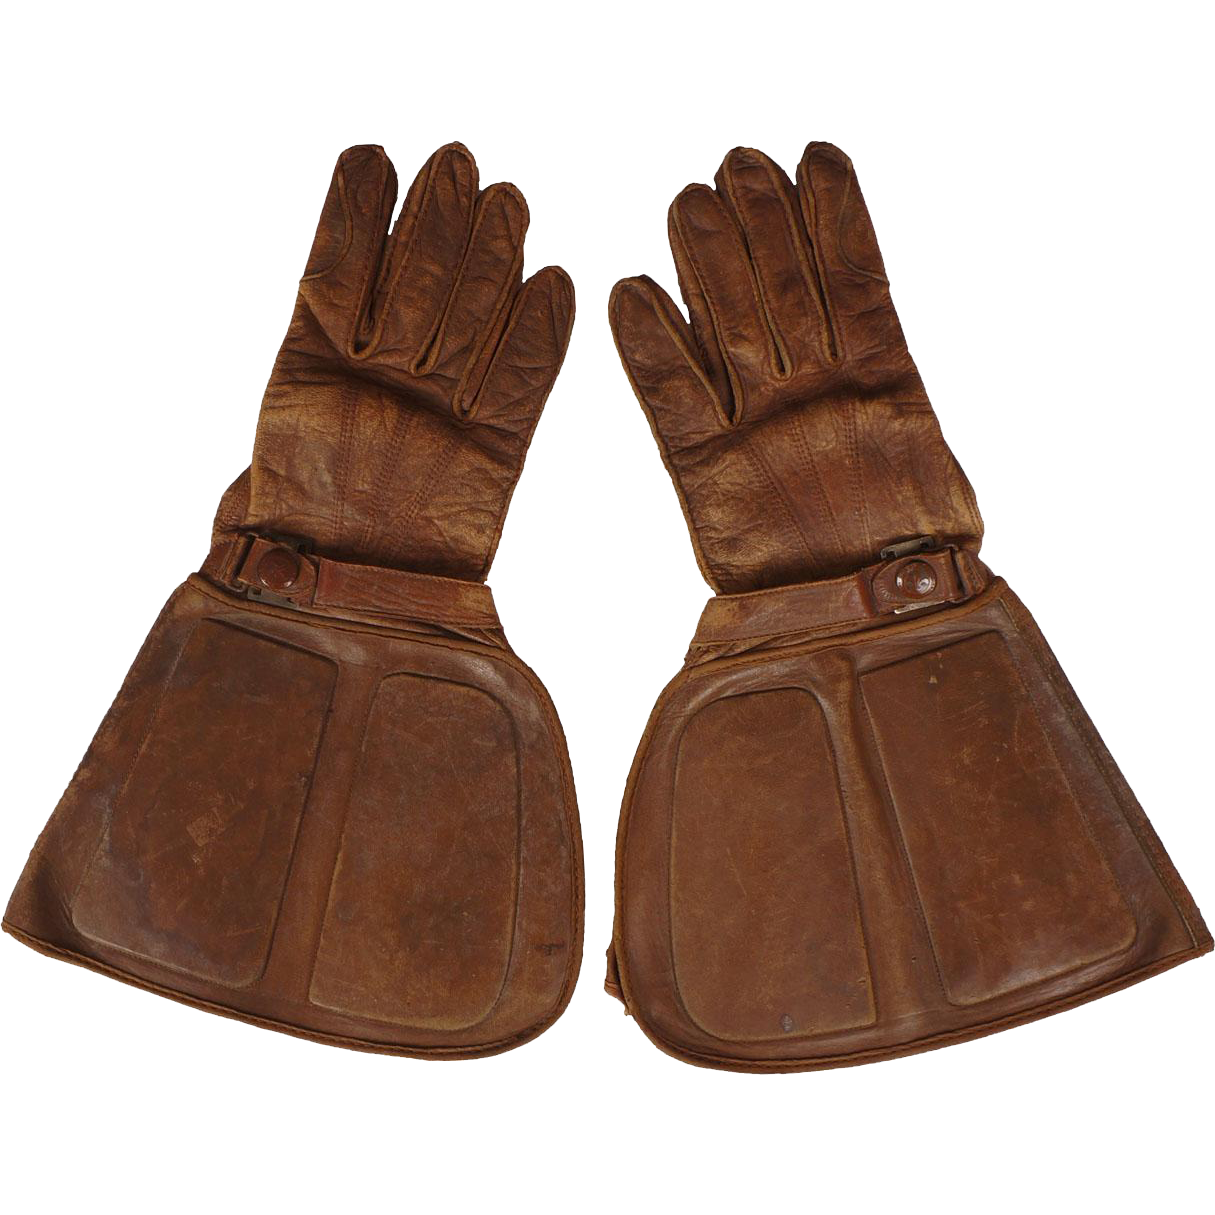 Buy Leather Motorcycle Gloves Online - Rhino Leather